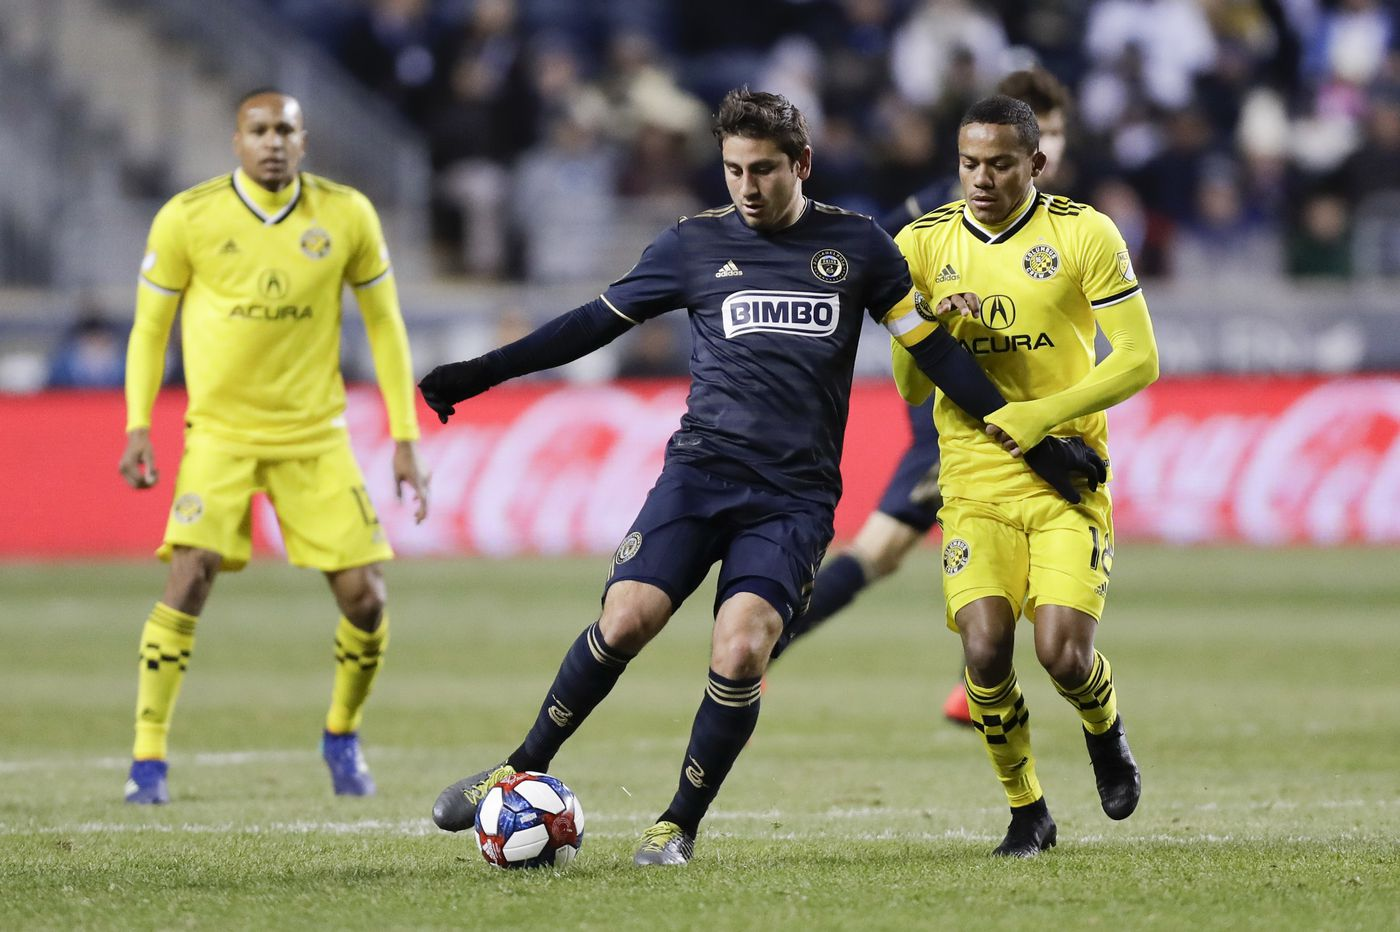 Union need to replace injured Alejandro Bedoya, and need to help Marco Fabián